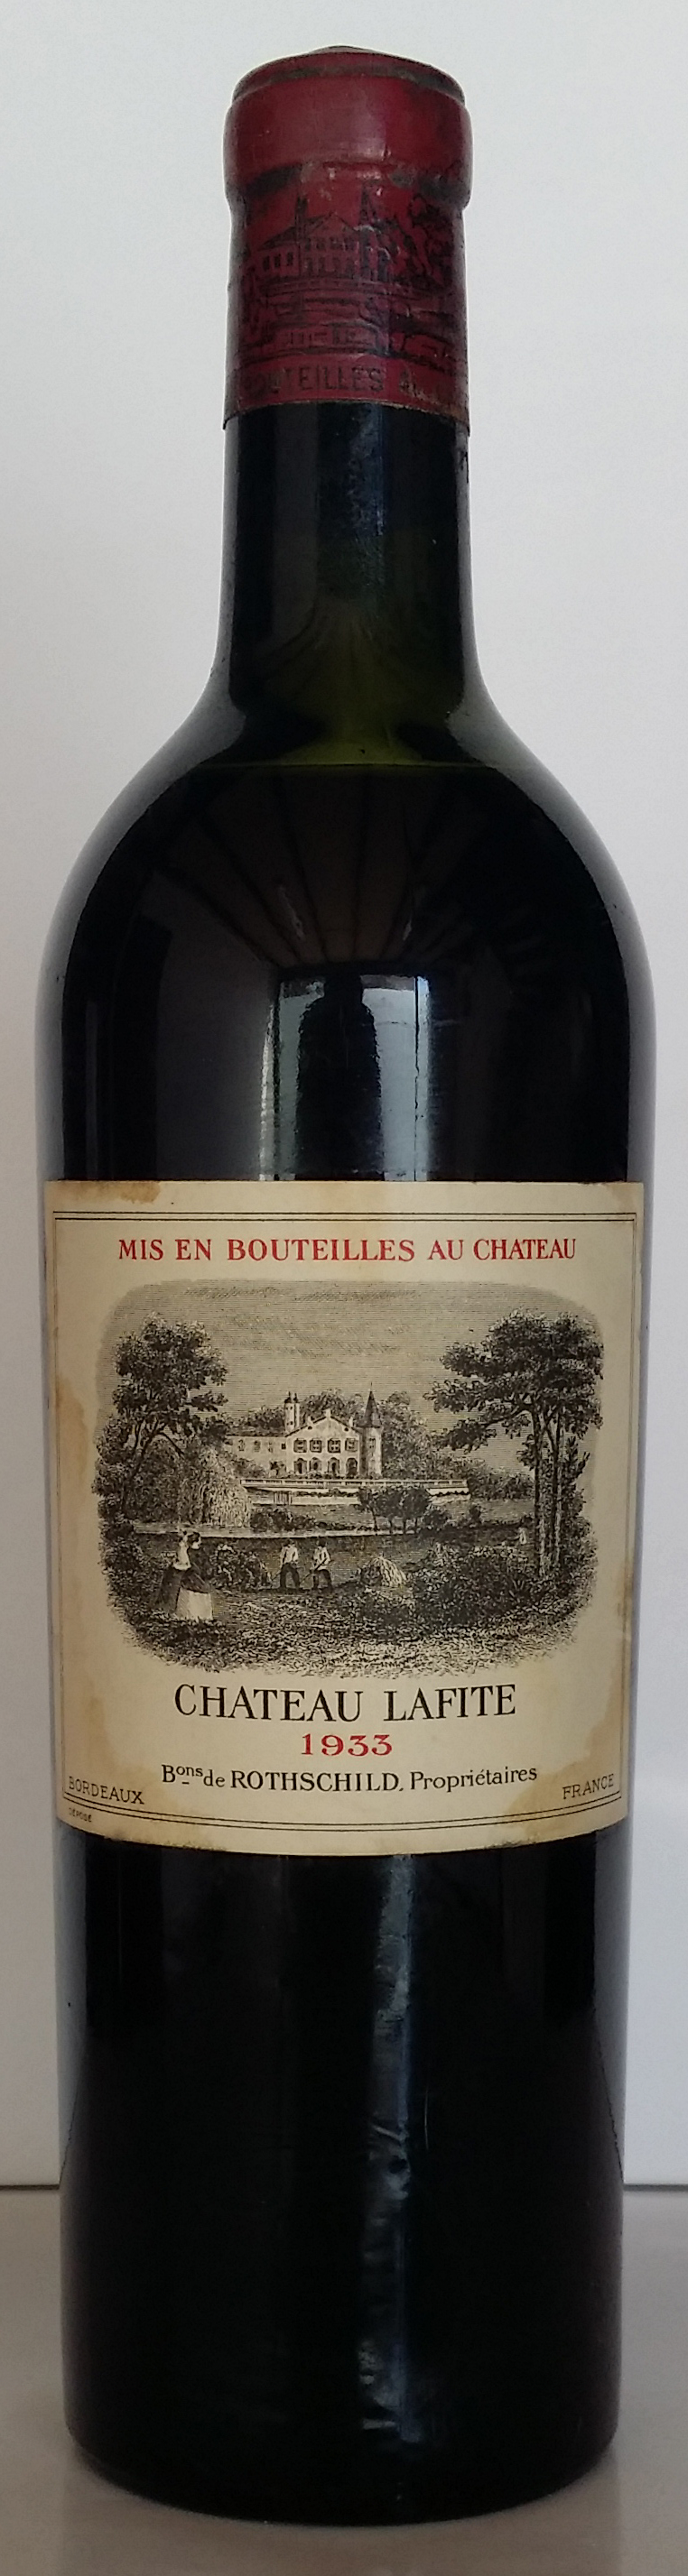 1933 Domaines Barons de Rothschild Chateau Lafite Rothschild